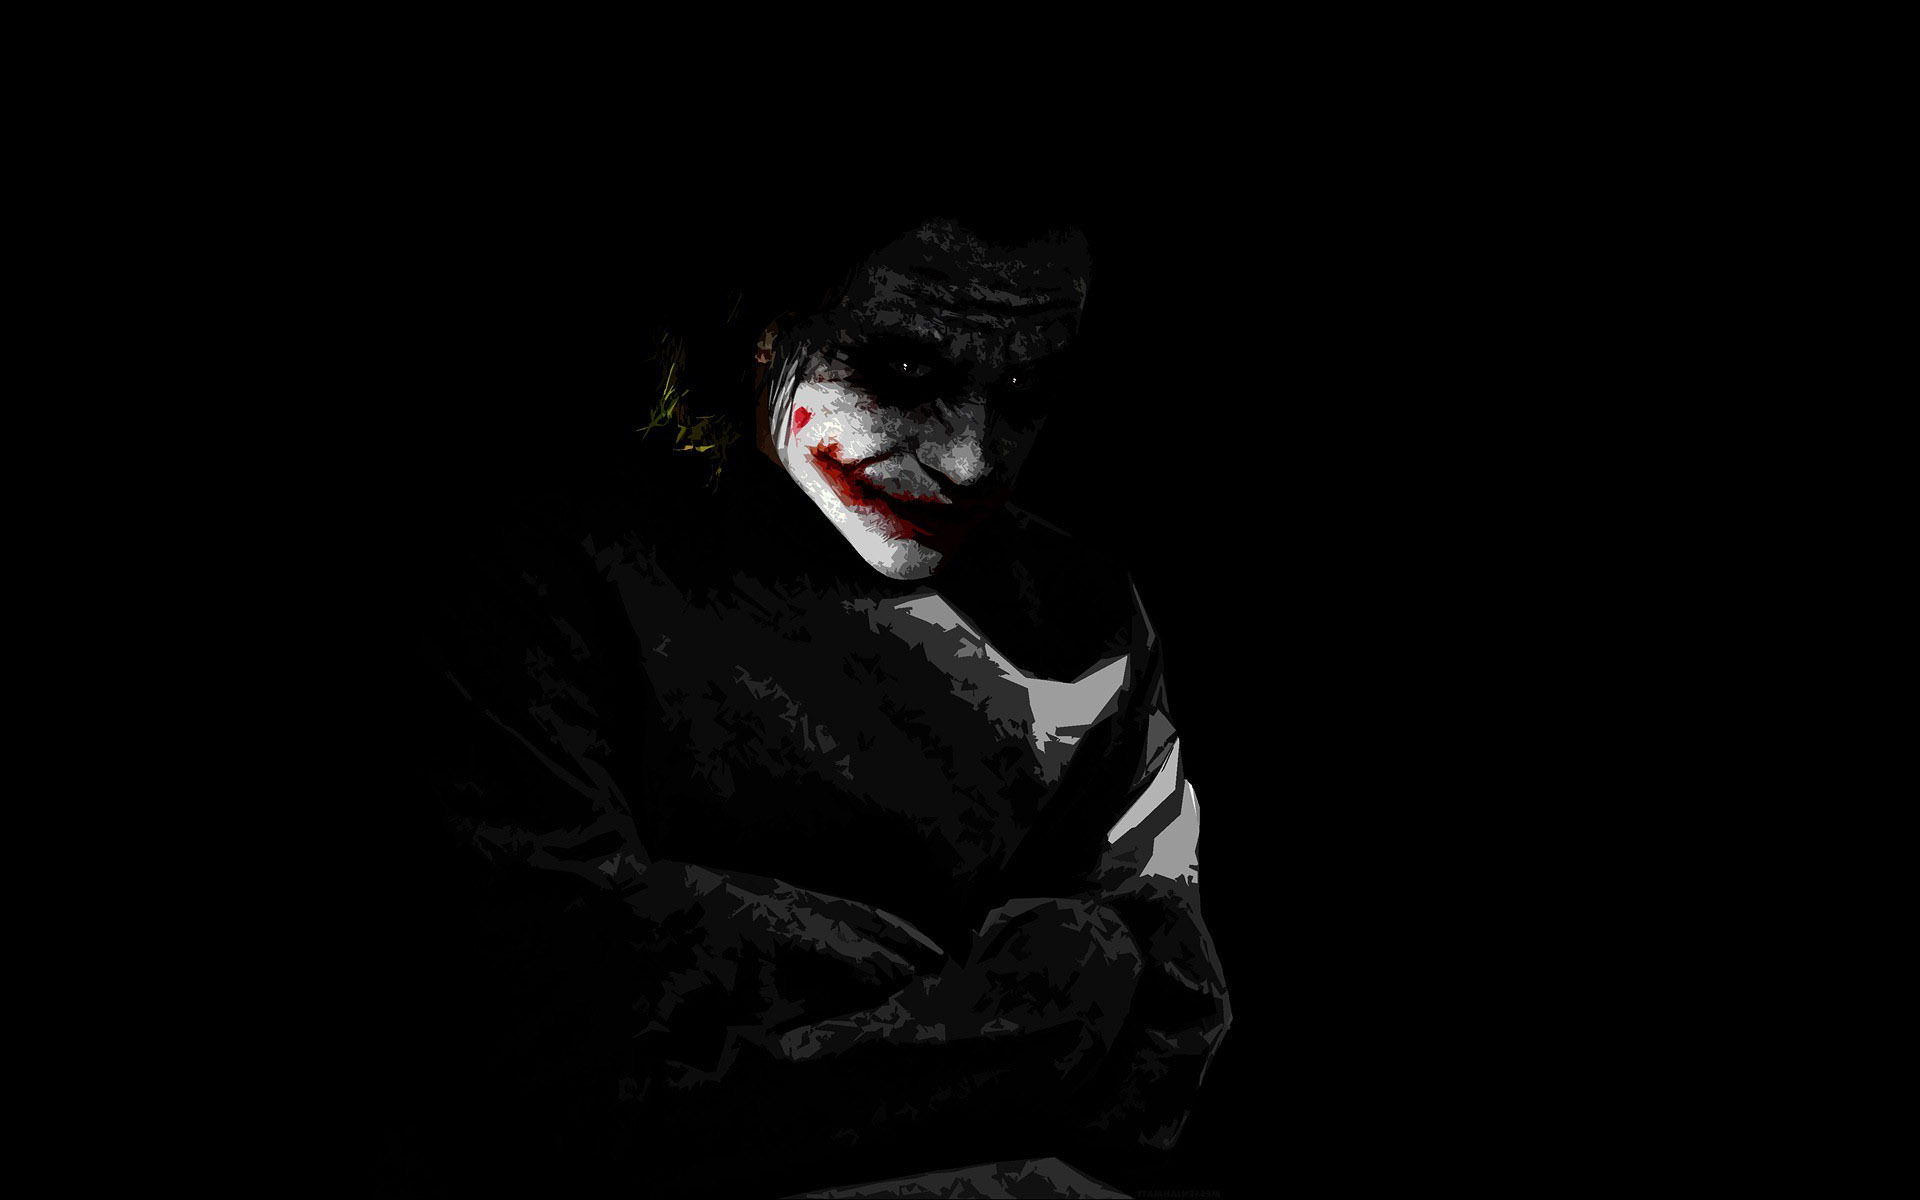 Joker Hd Wallpapers 1080P   HD Wallpapers Pretty 1920x1200